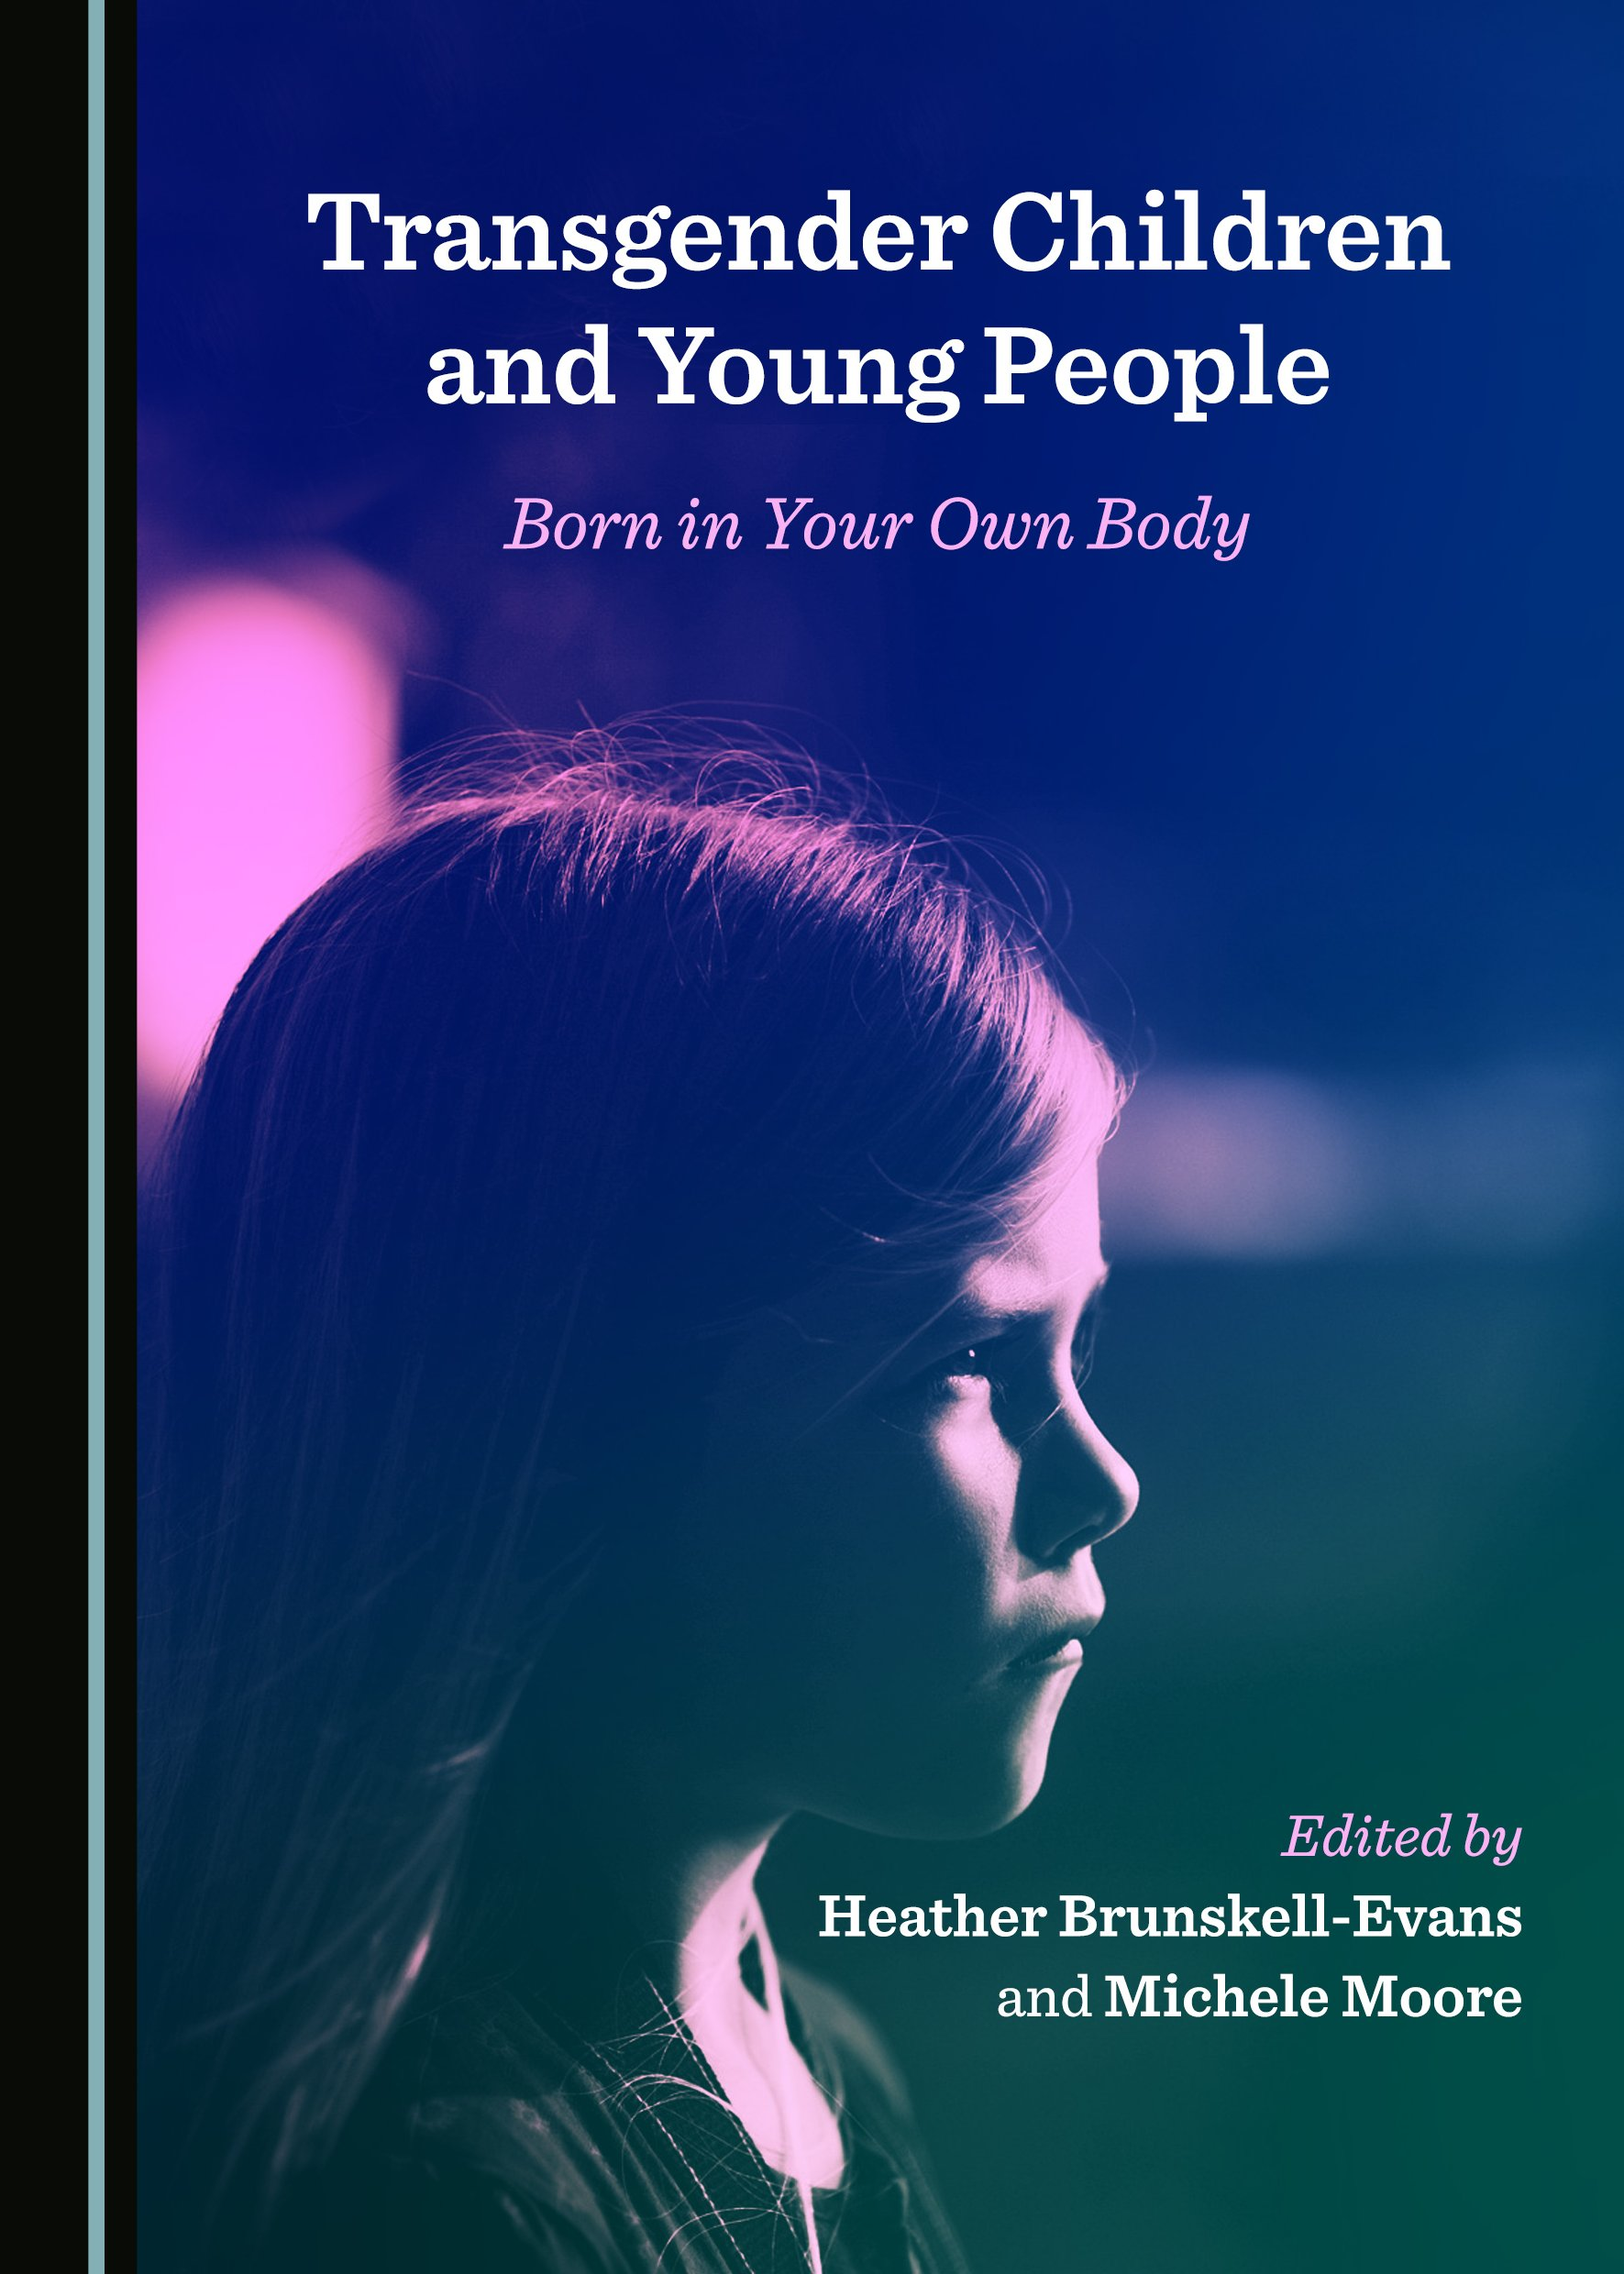 Transgender Children and Young People: Born in Your Own Body